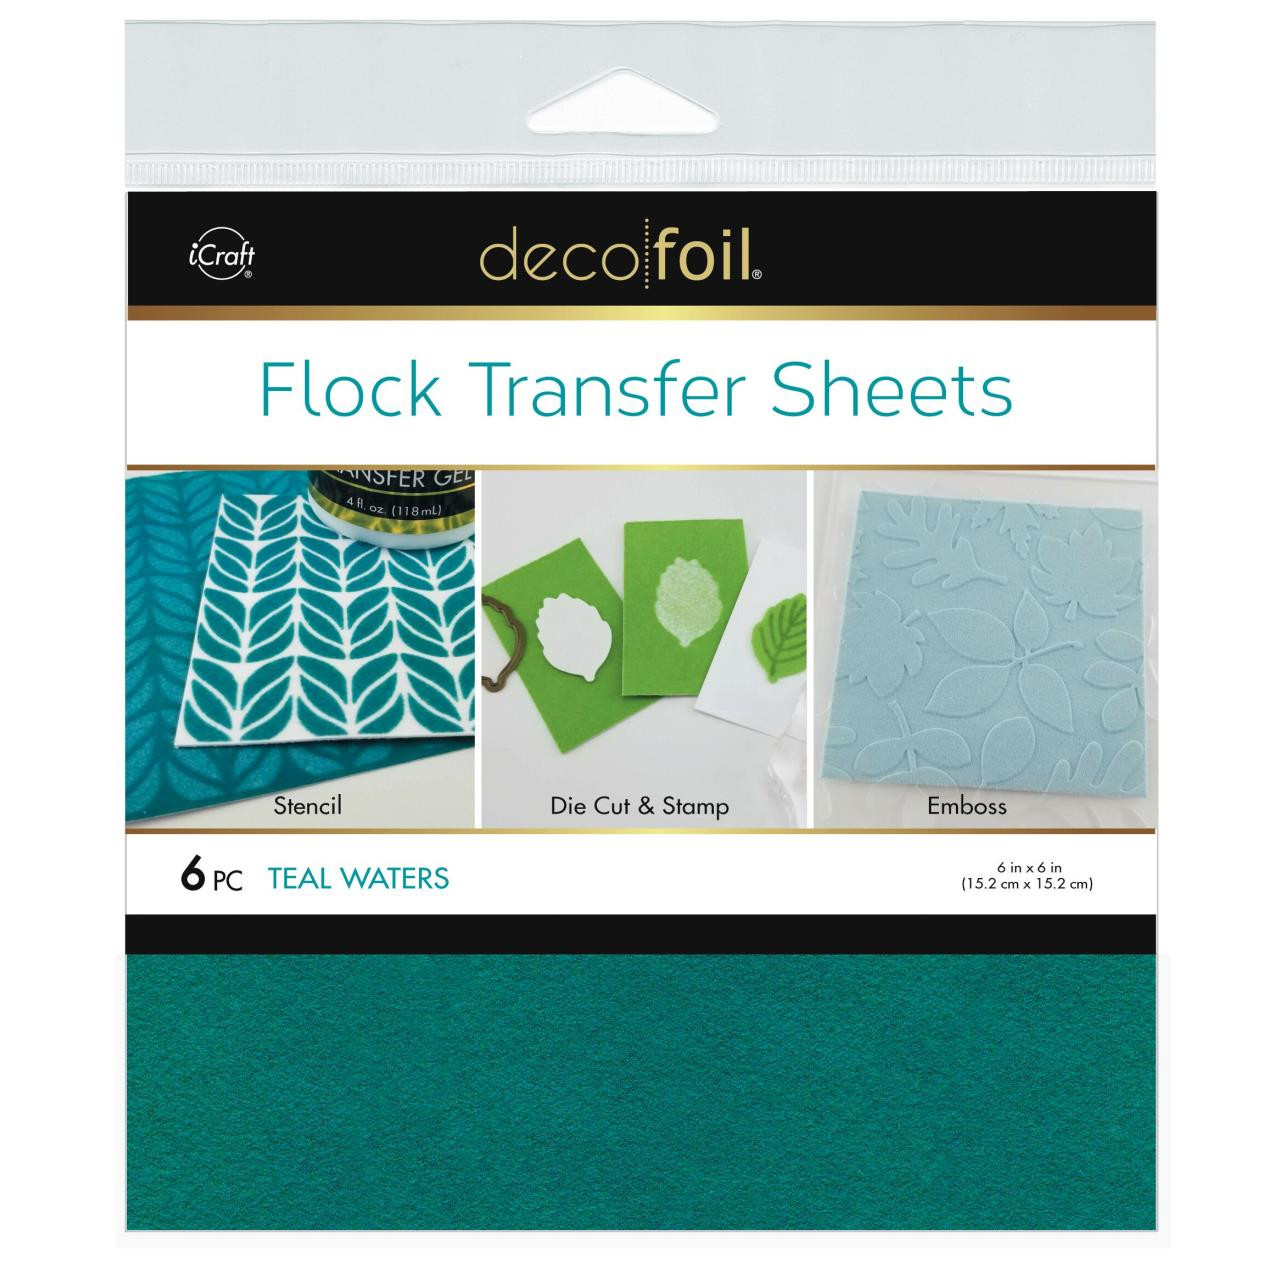 Teal Waters, Deco Foil Flock Transfer Sheets - 943055617